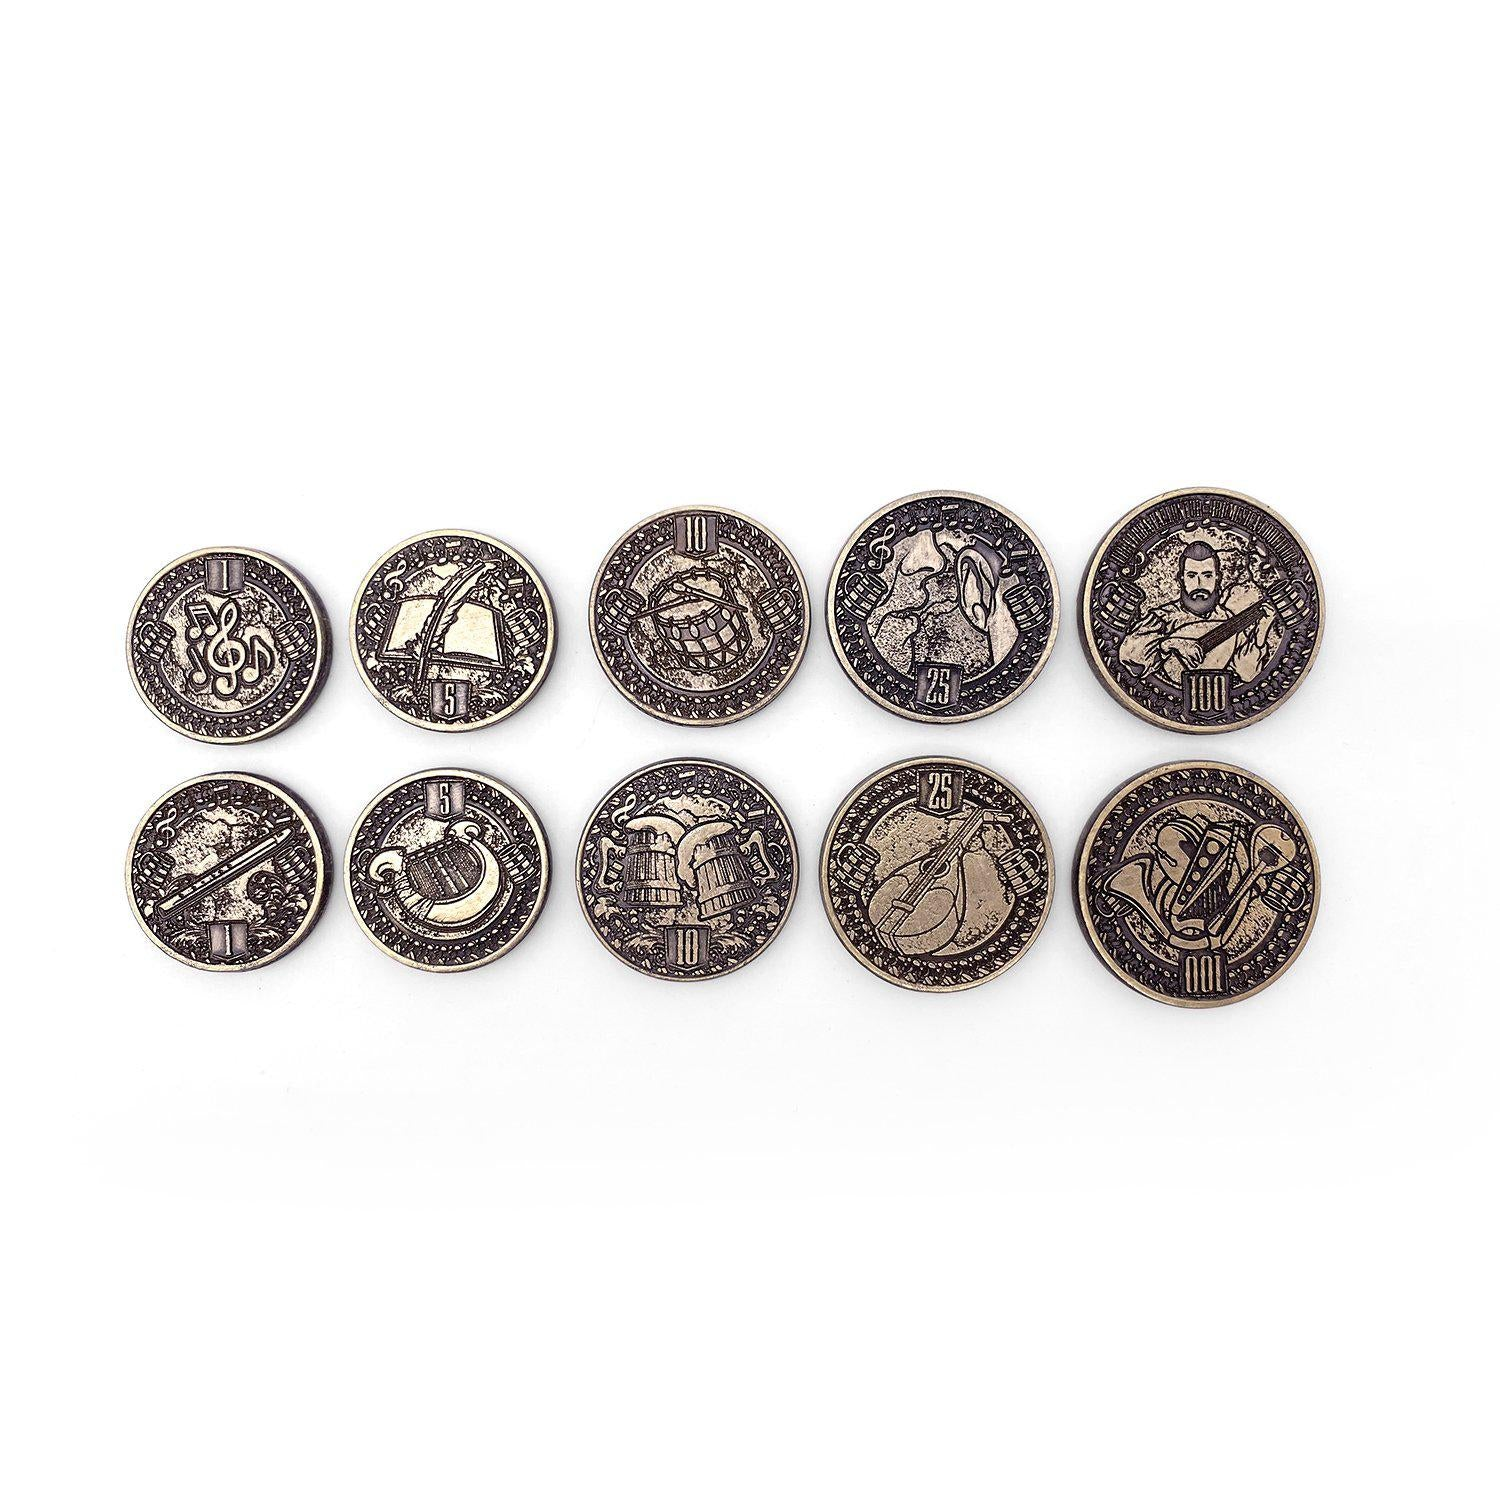 Adventure Coins - Bard Metal Coins Set of 10